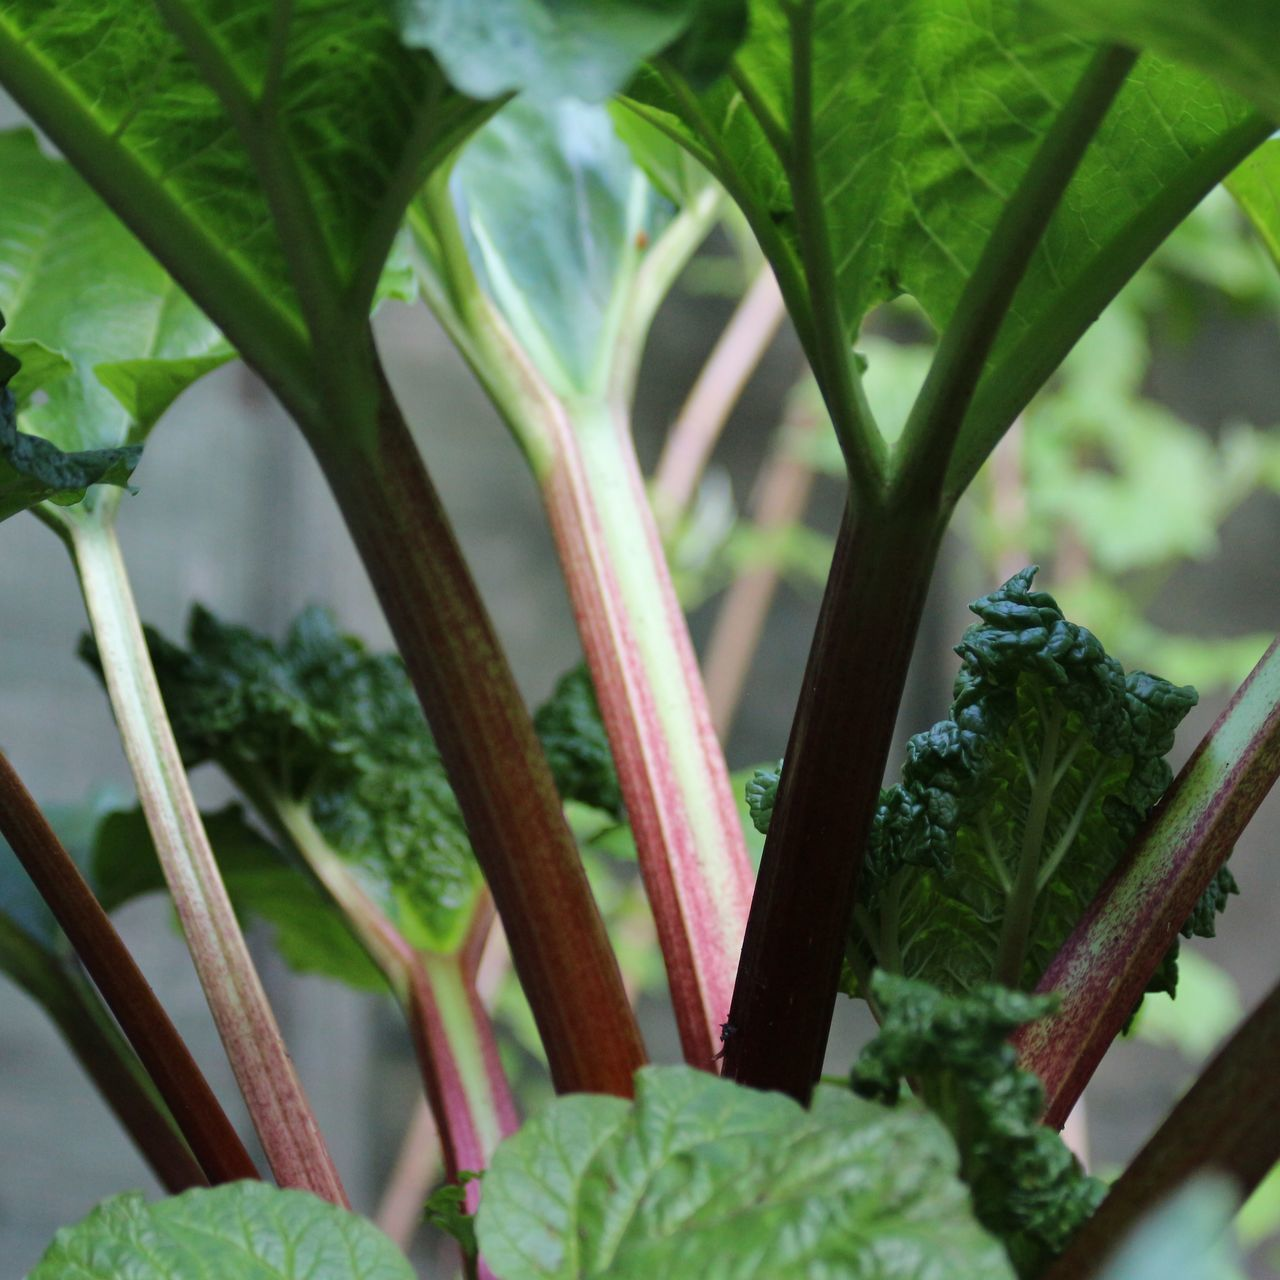 Rhubarb Rhubarb Leaves Rhubarb Stalk Rhubarb Plant Garden Planting Dirt Fruitgarden English Garden Macro Plants